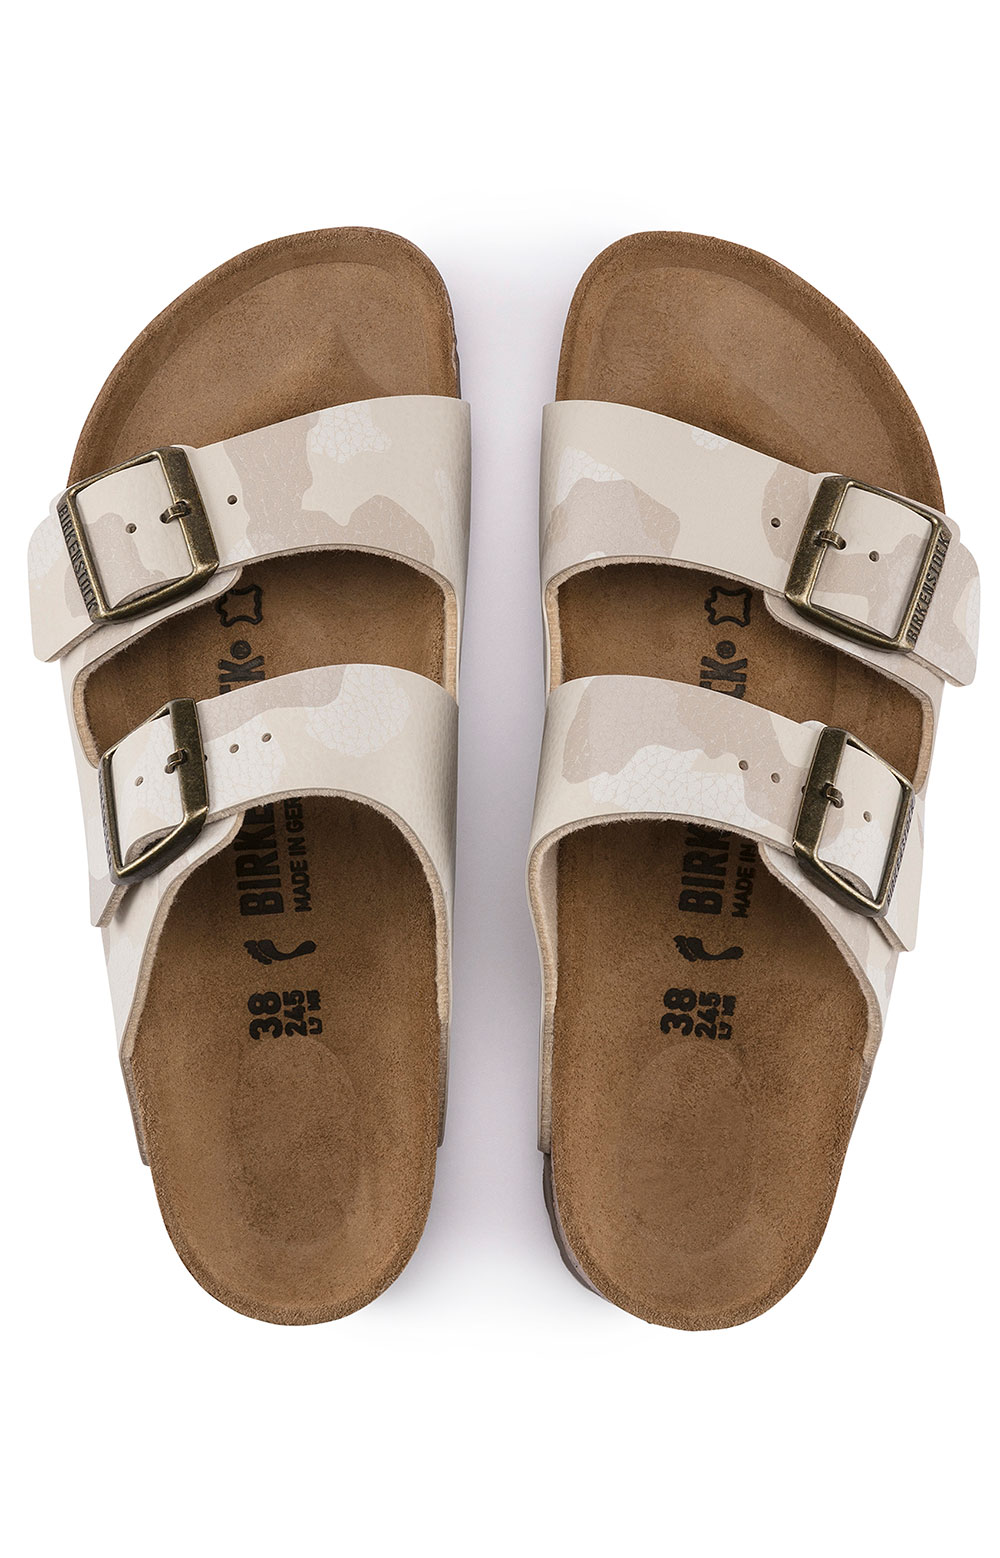 (1016791) Arizona Sandals - Desert Soil Camo Sand 6